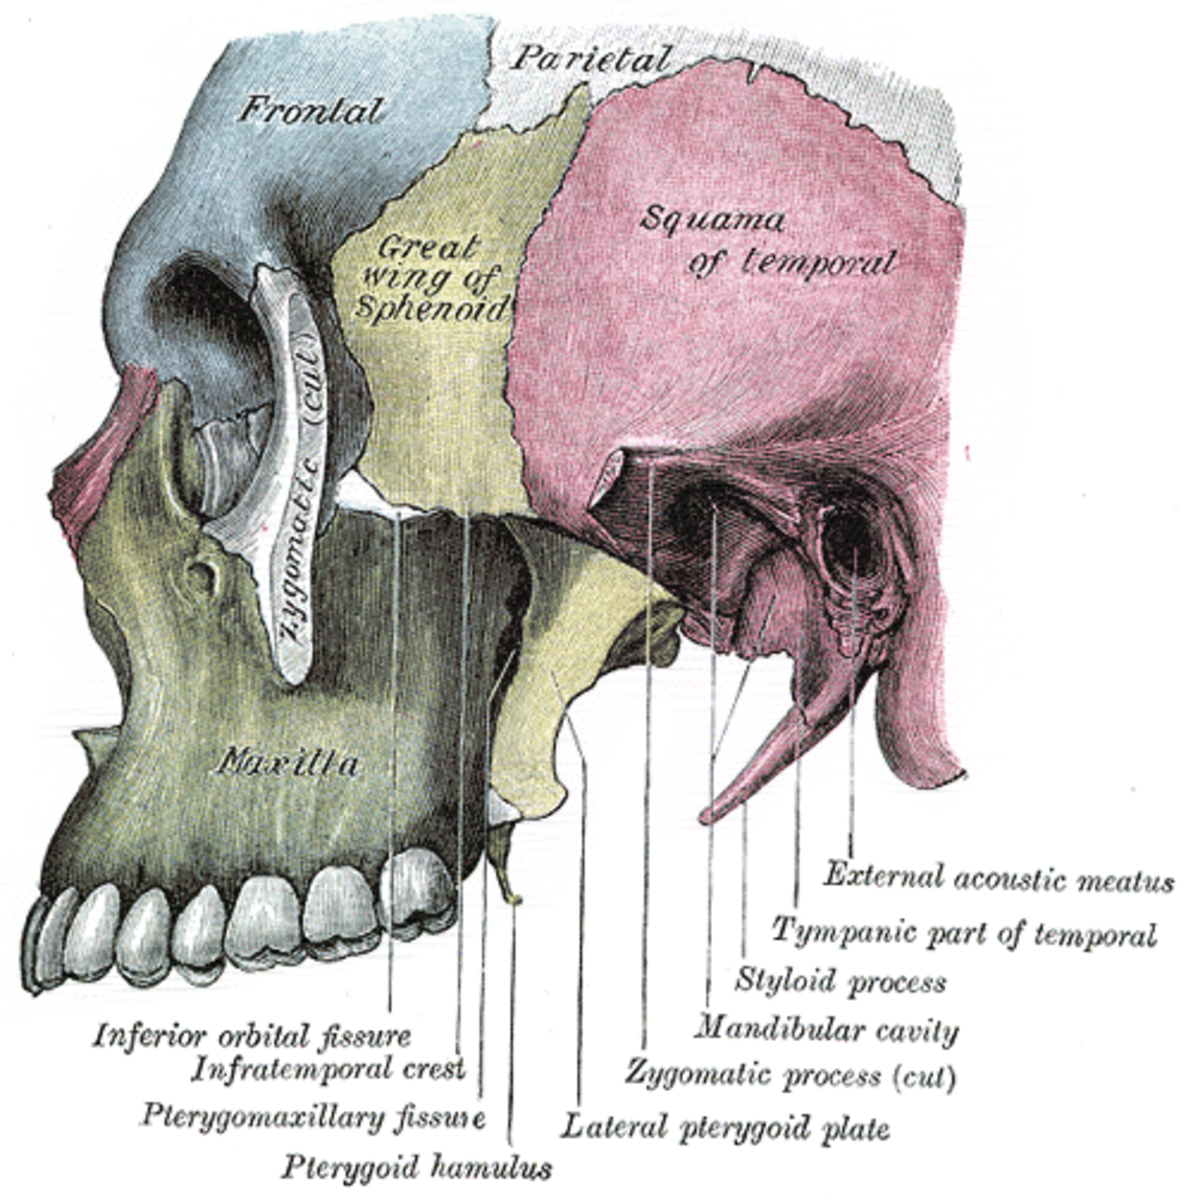 Maxilla (in green) in the human skull.